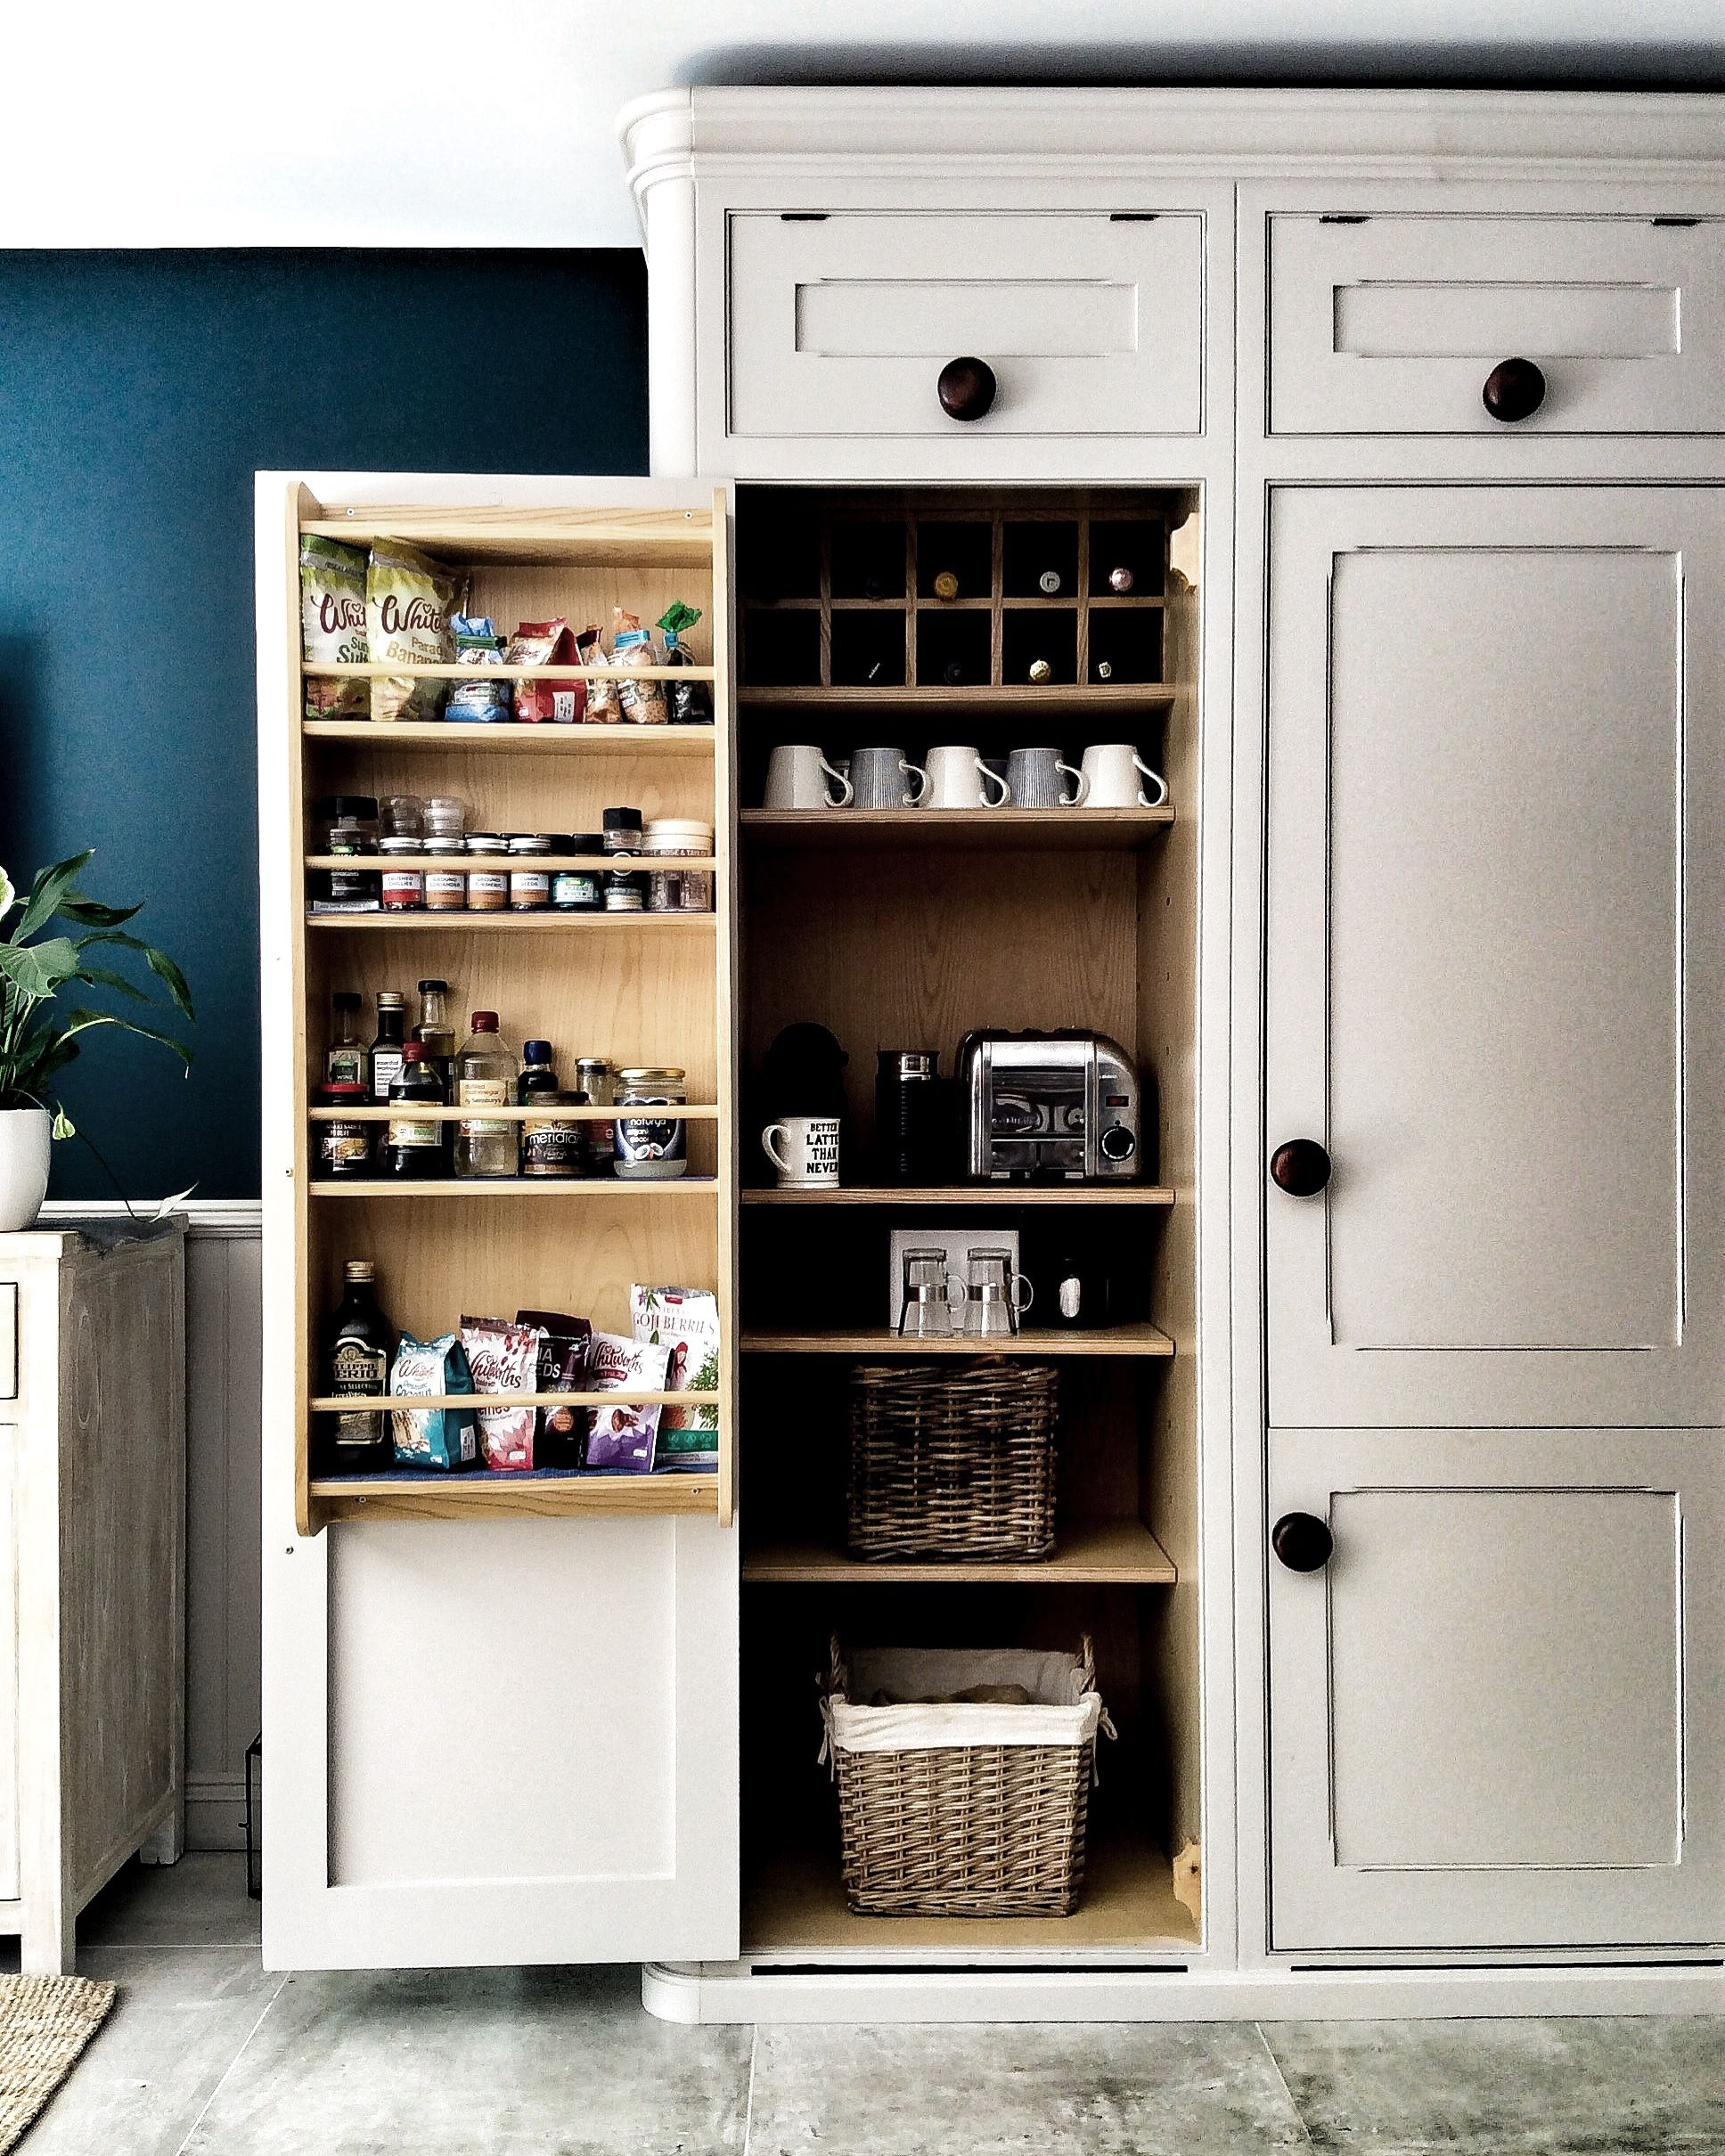 Pantry Organisation. Adding An Appliance Shelf To This